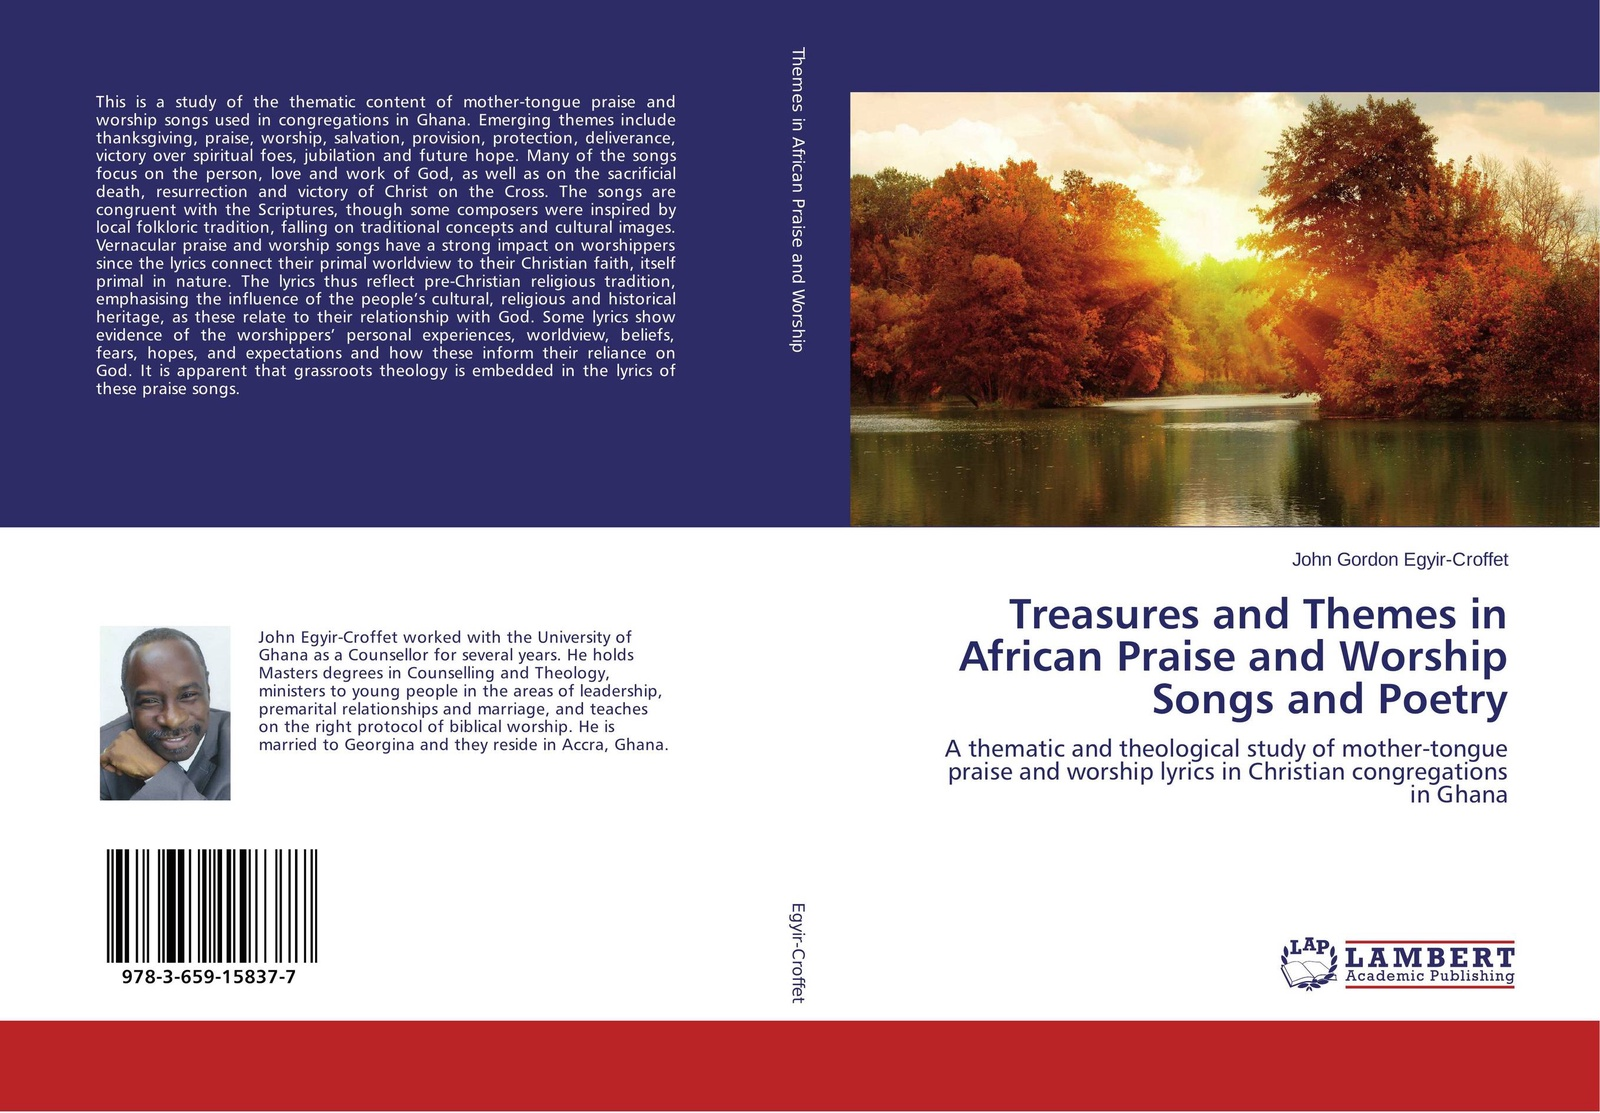 John Gordon Egyir-Croffet Treasures and Themes in African Praise and Worship Songs and Poetry the worshippers